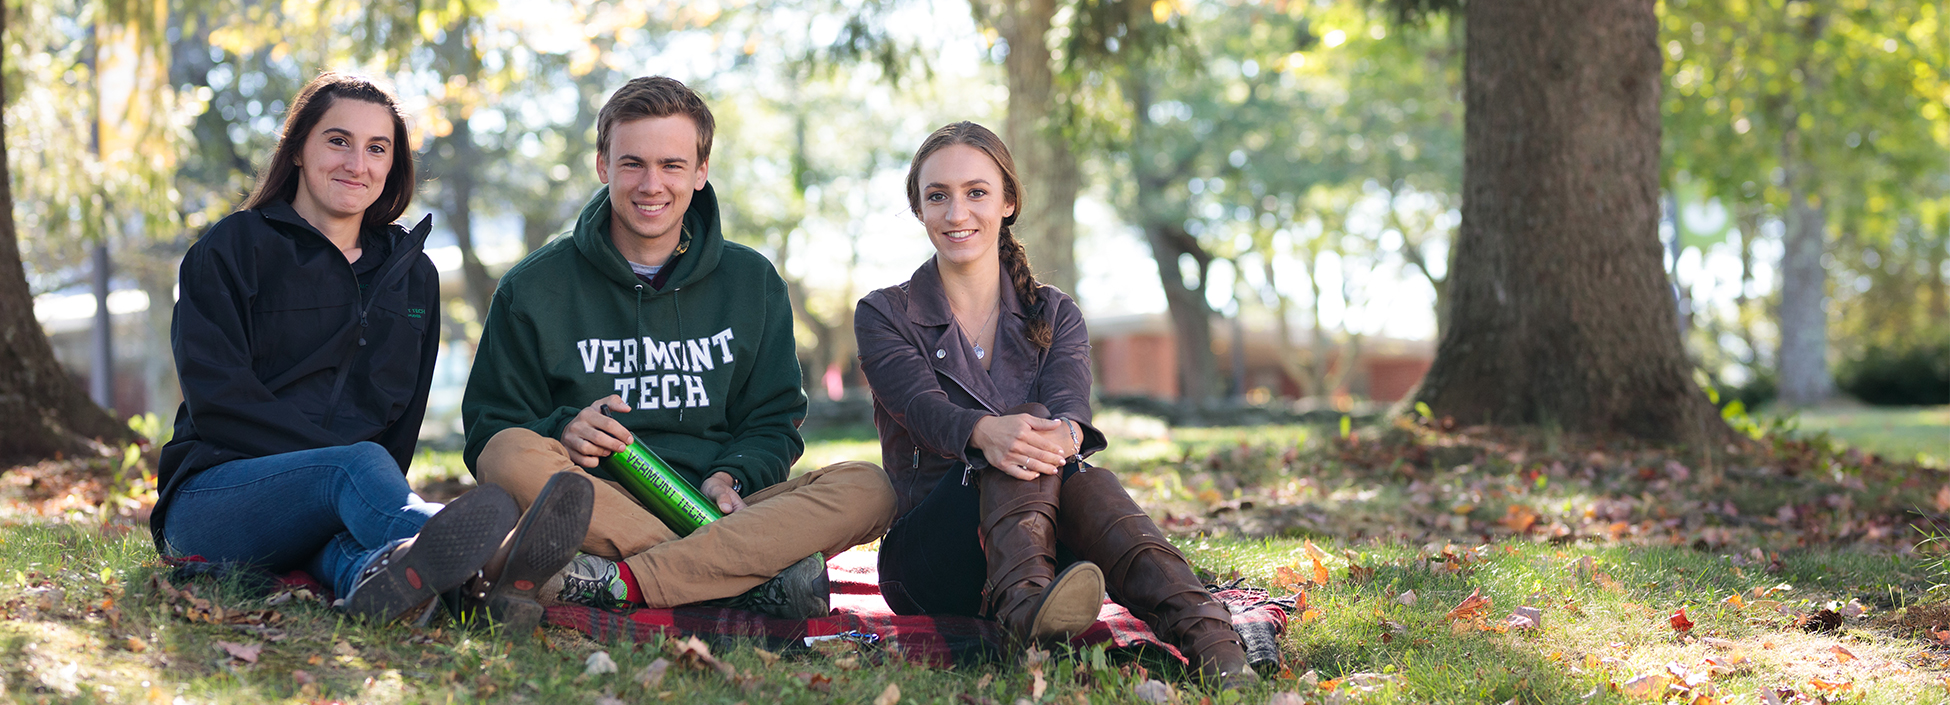 three students enjoy an afternoon on the lawn under the trees, smiling, Randolph Center campus